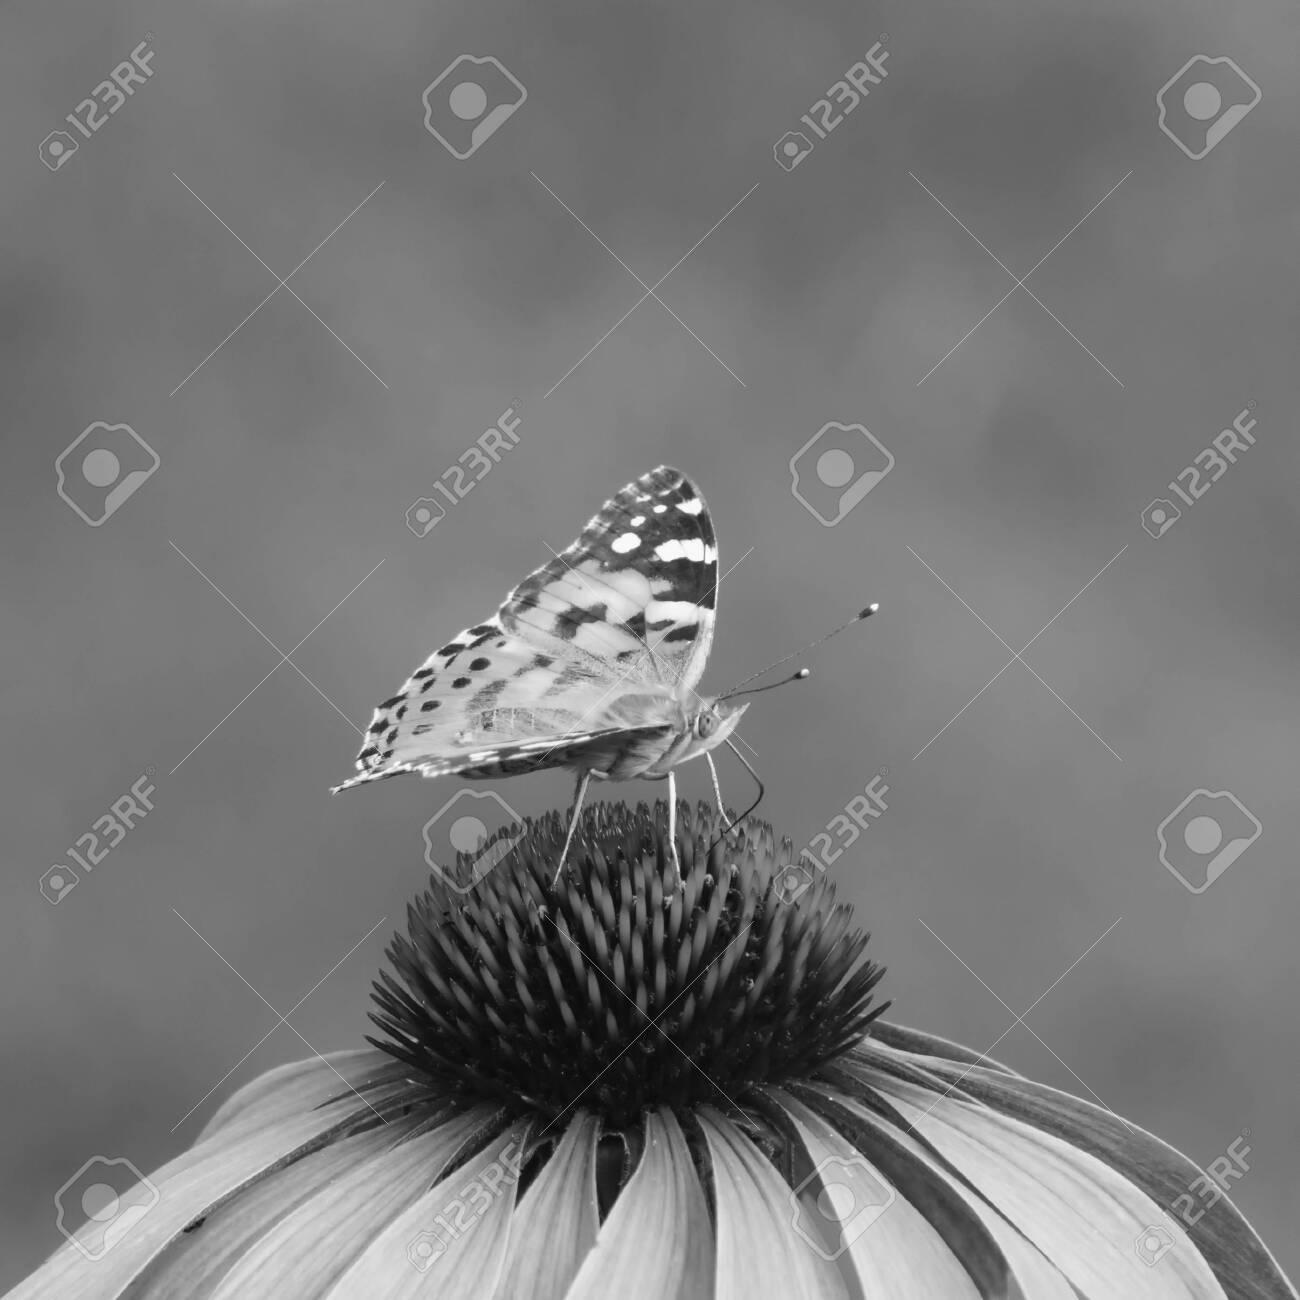 close-up of a painted lady (Vanessa cardui) on the blossom of a coneflower, monochrome image - 148032648